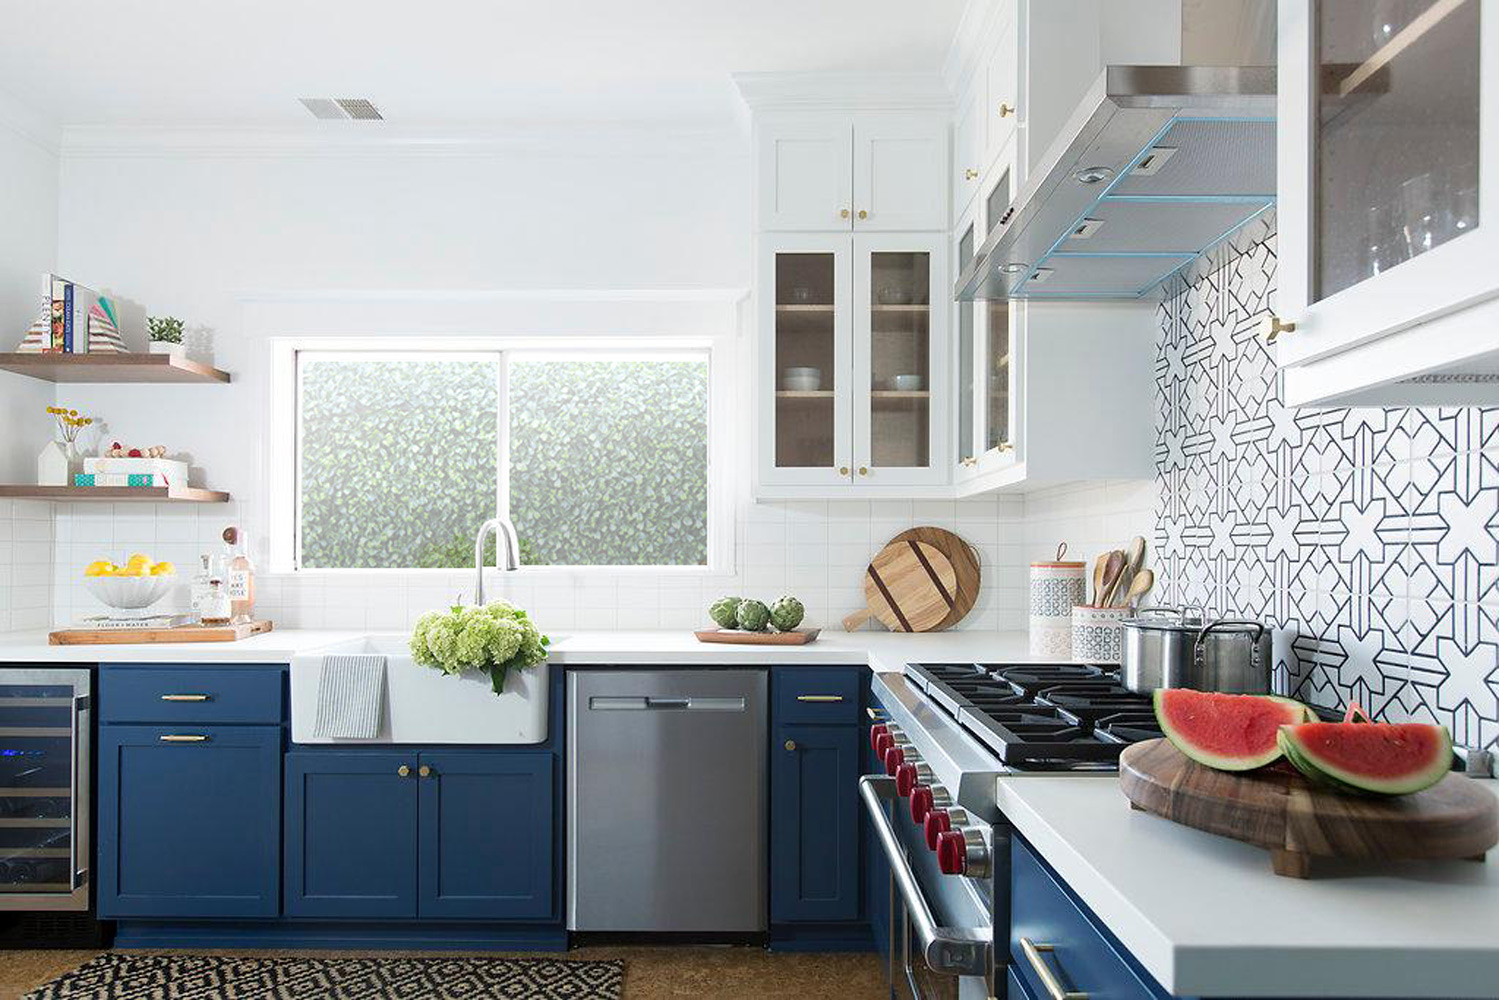 Two Toned Kitchen - Erin King 2.jpg